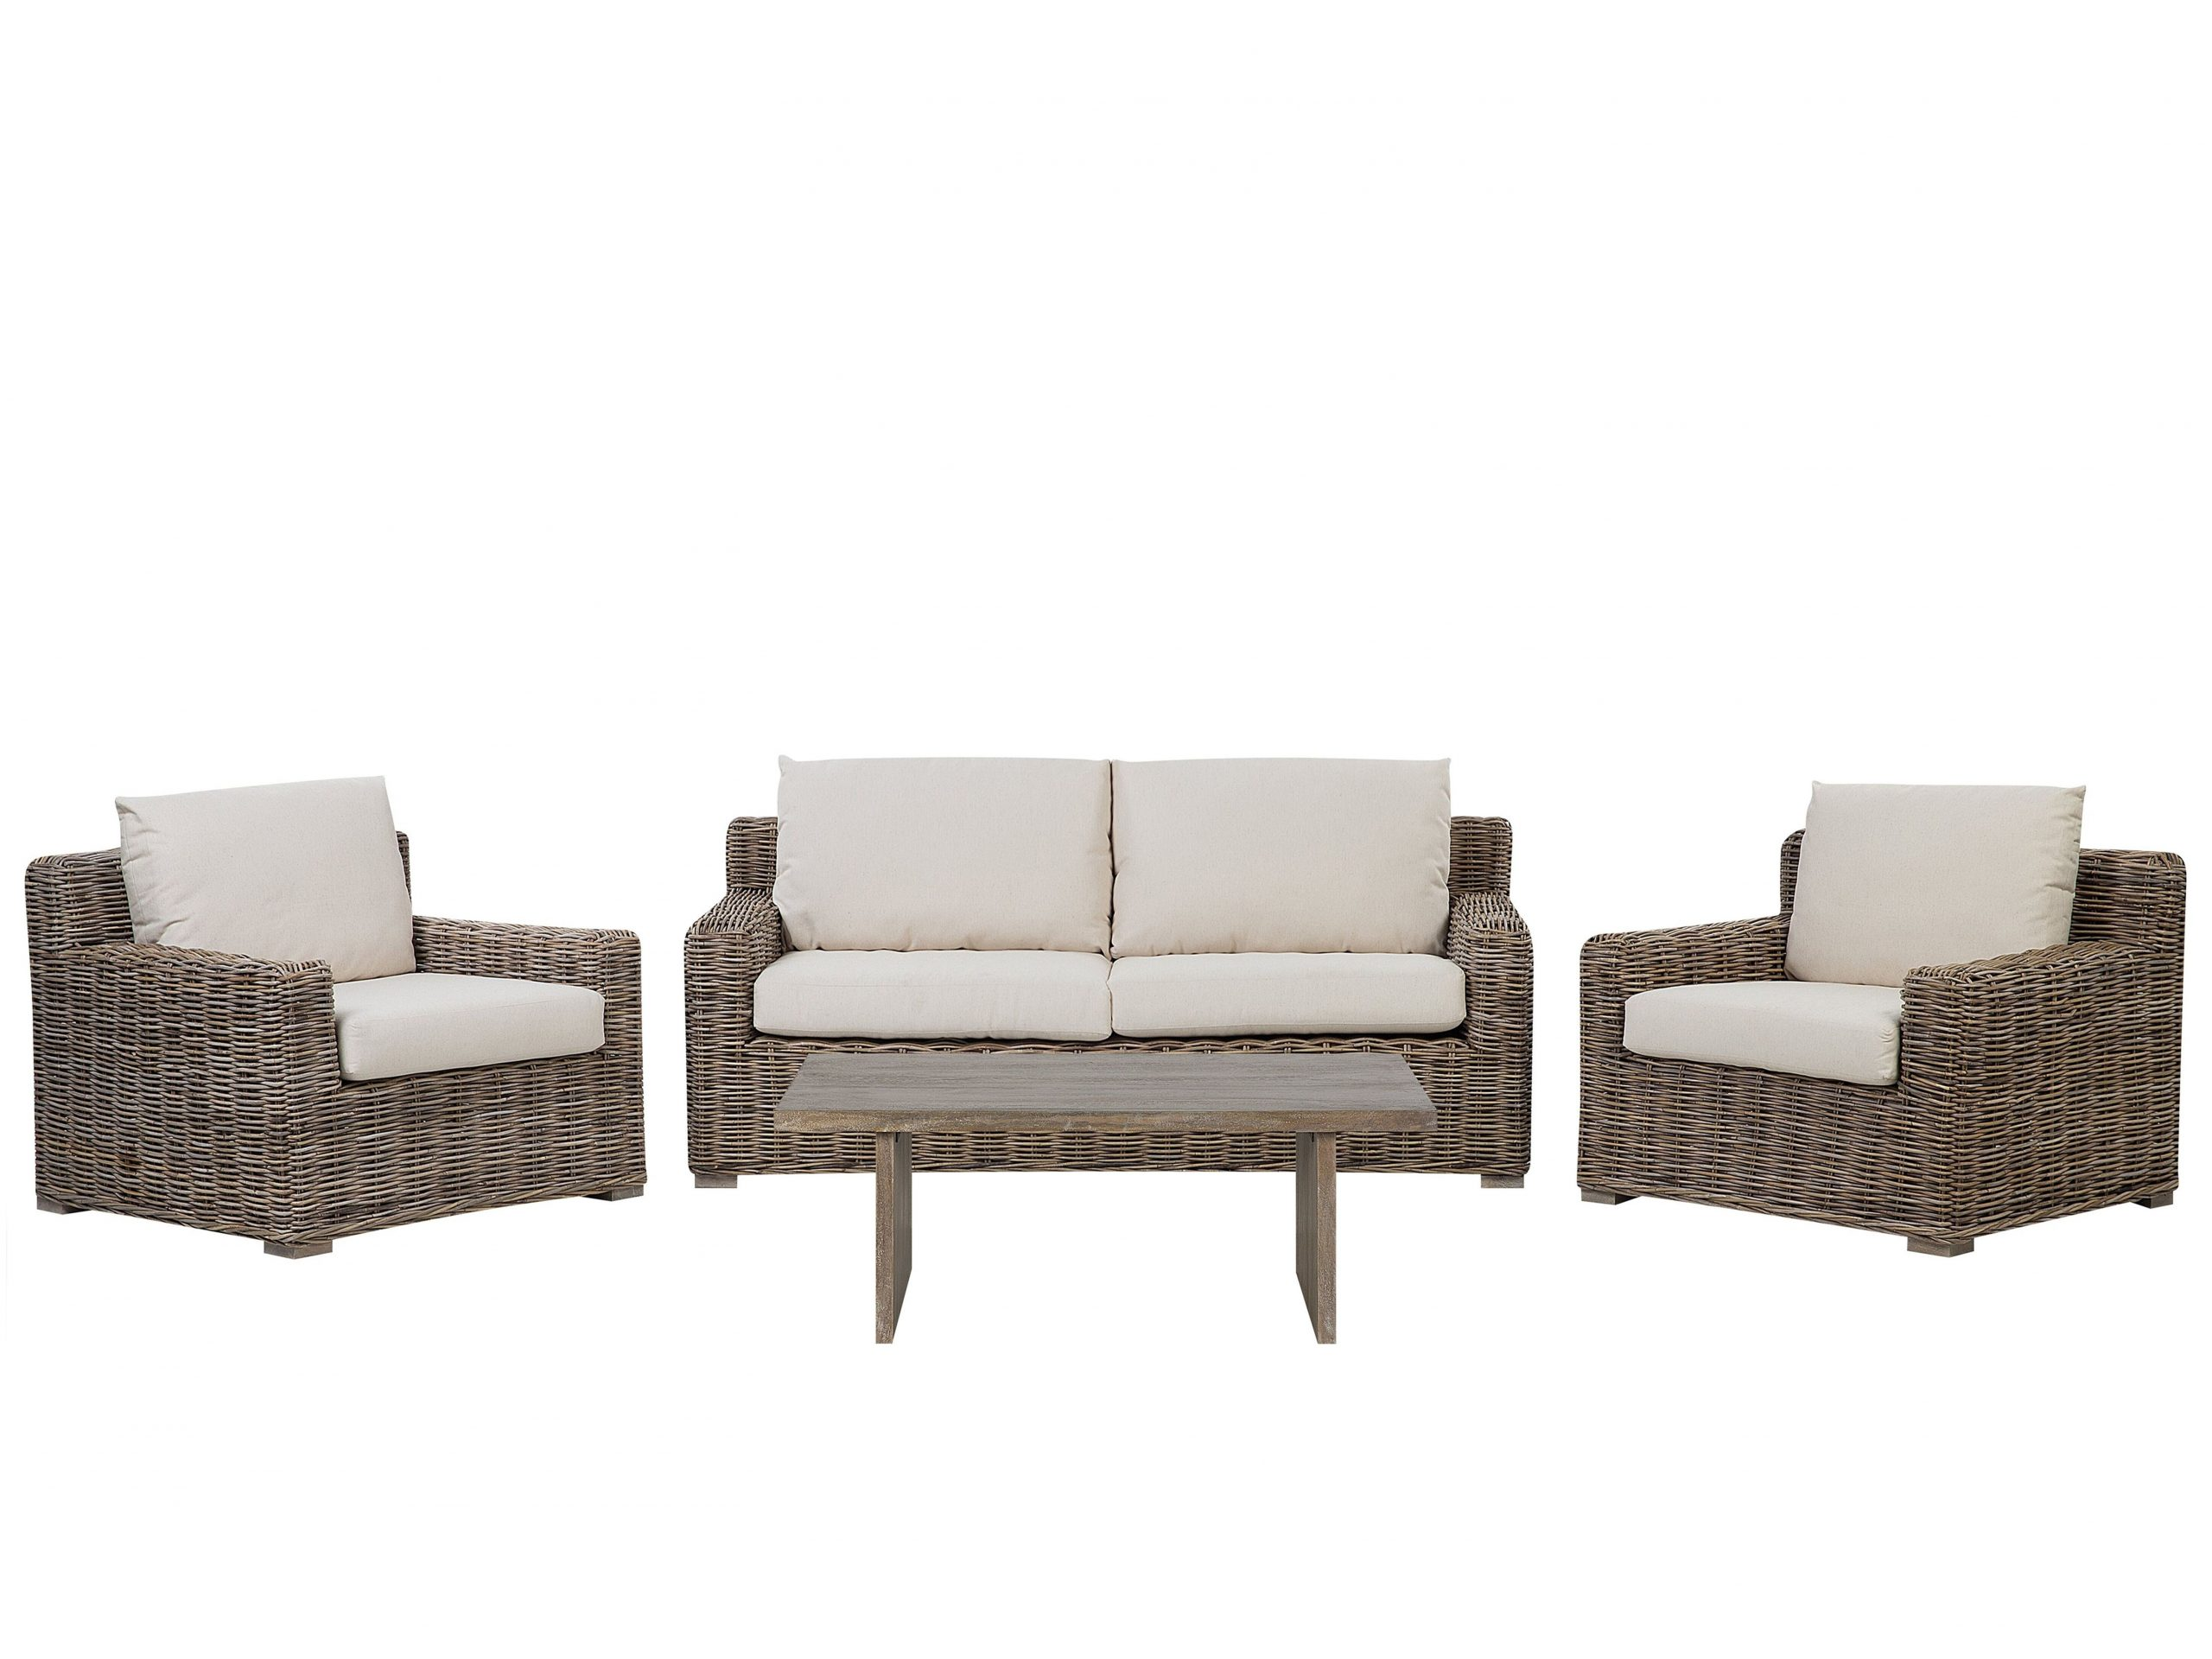 Full Size of Rattan Furniture Table Glass Sofa Cover Uk Cushions Outdoor Bed With Canopy Corner For Sale Singapore Joo Chiat Couches Set Aldi Garden Light Wood Ardea Sofa Rattan Sofa